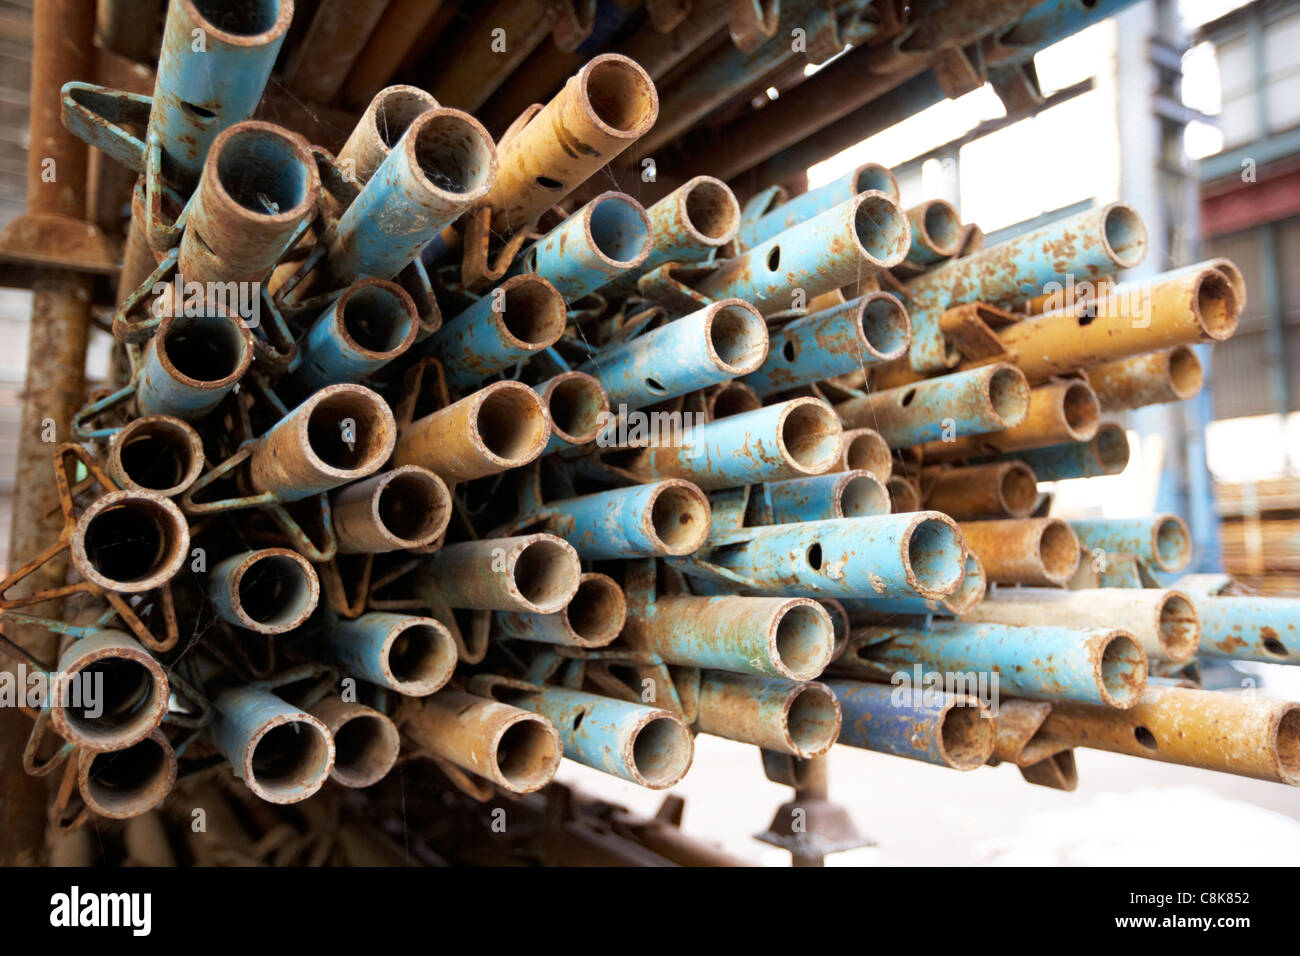 pile of used scaffolding poles stored in an old factory warehouse unit belfast northern ireland uk. - Stock Image